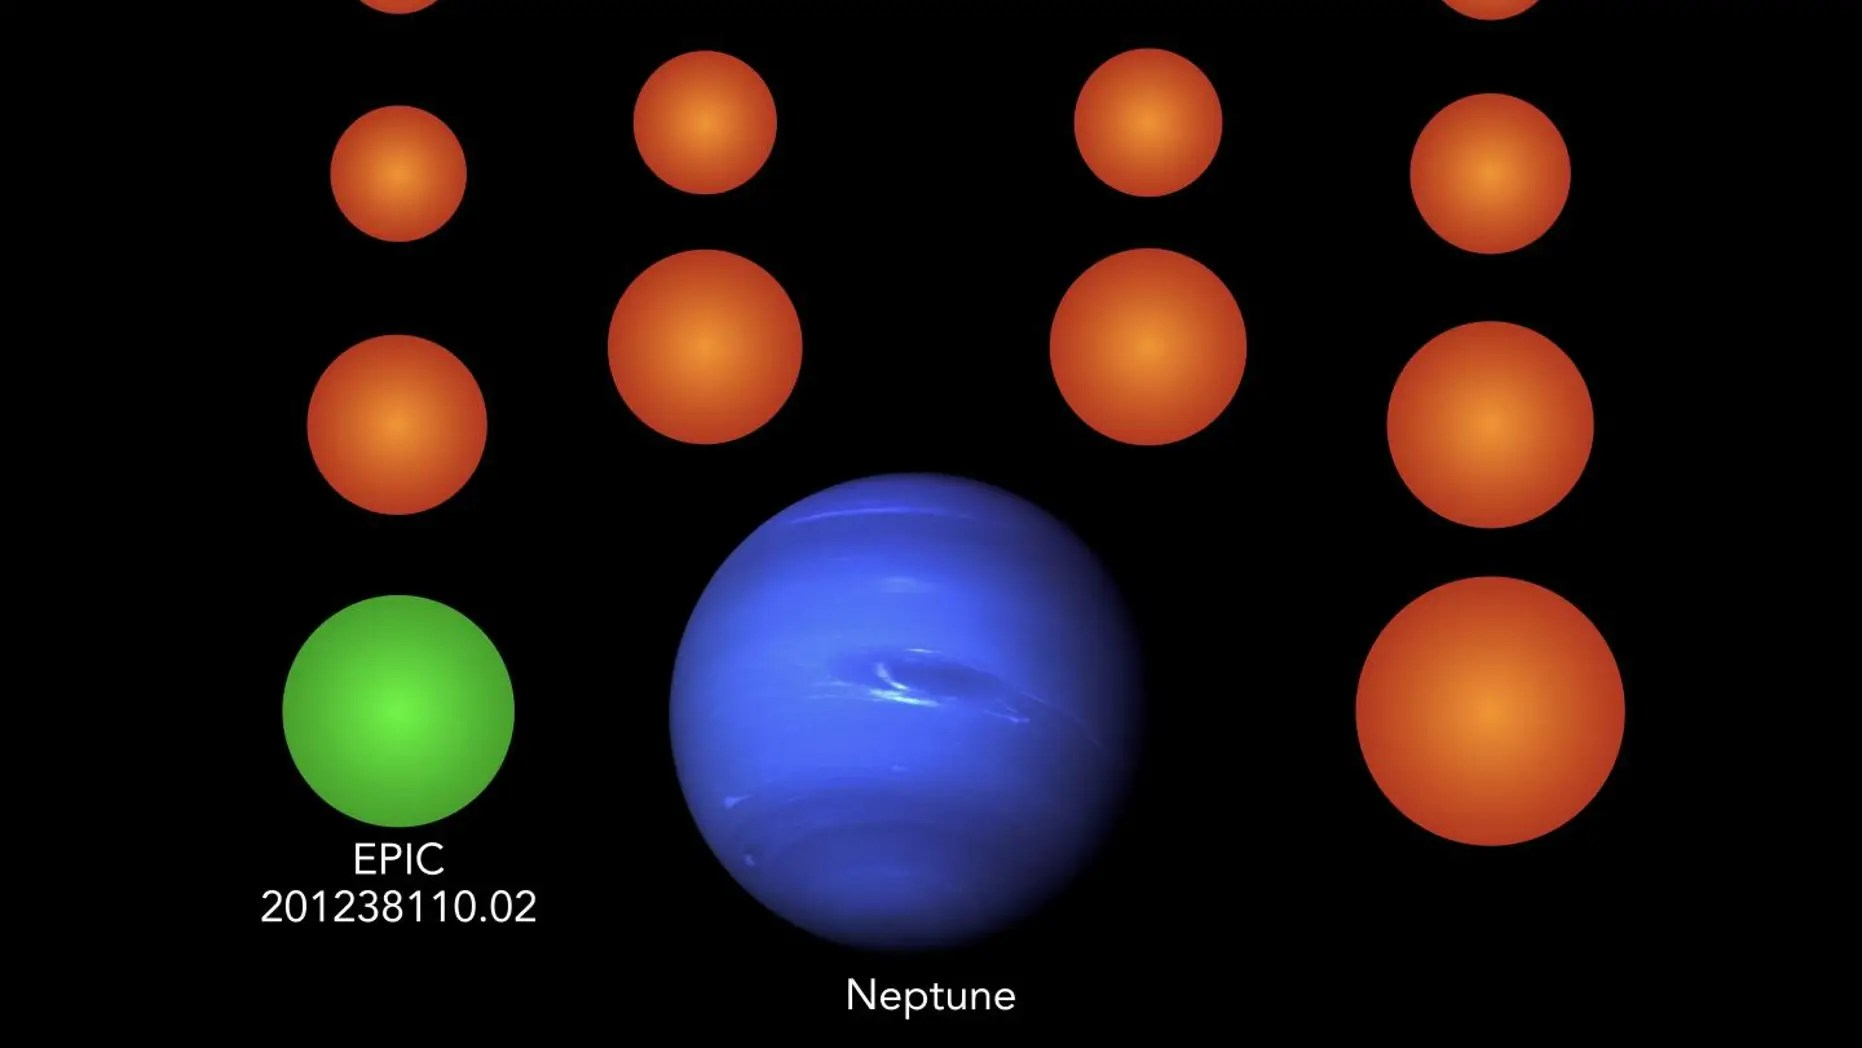 hight resolution of a diagram showing the sizes of the newly identified planets compared to earth and neptune